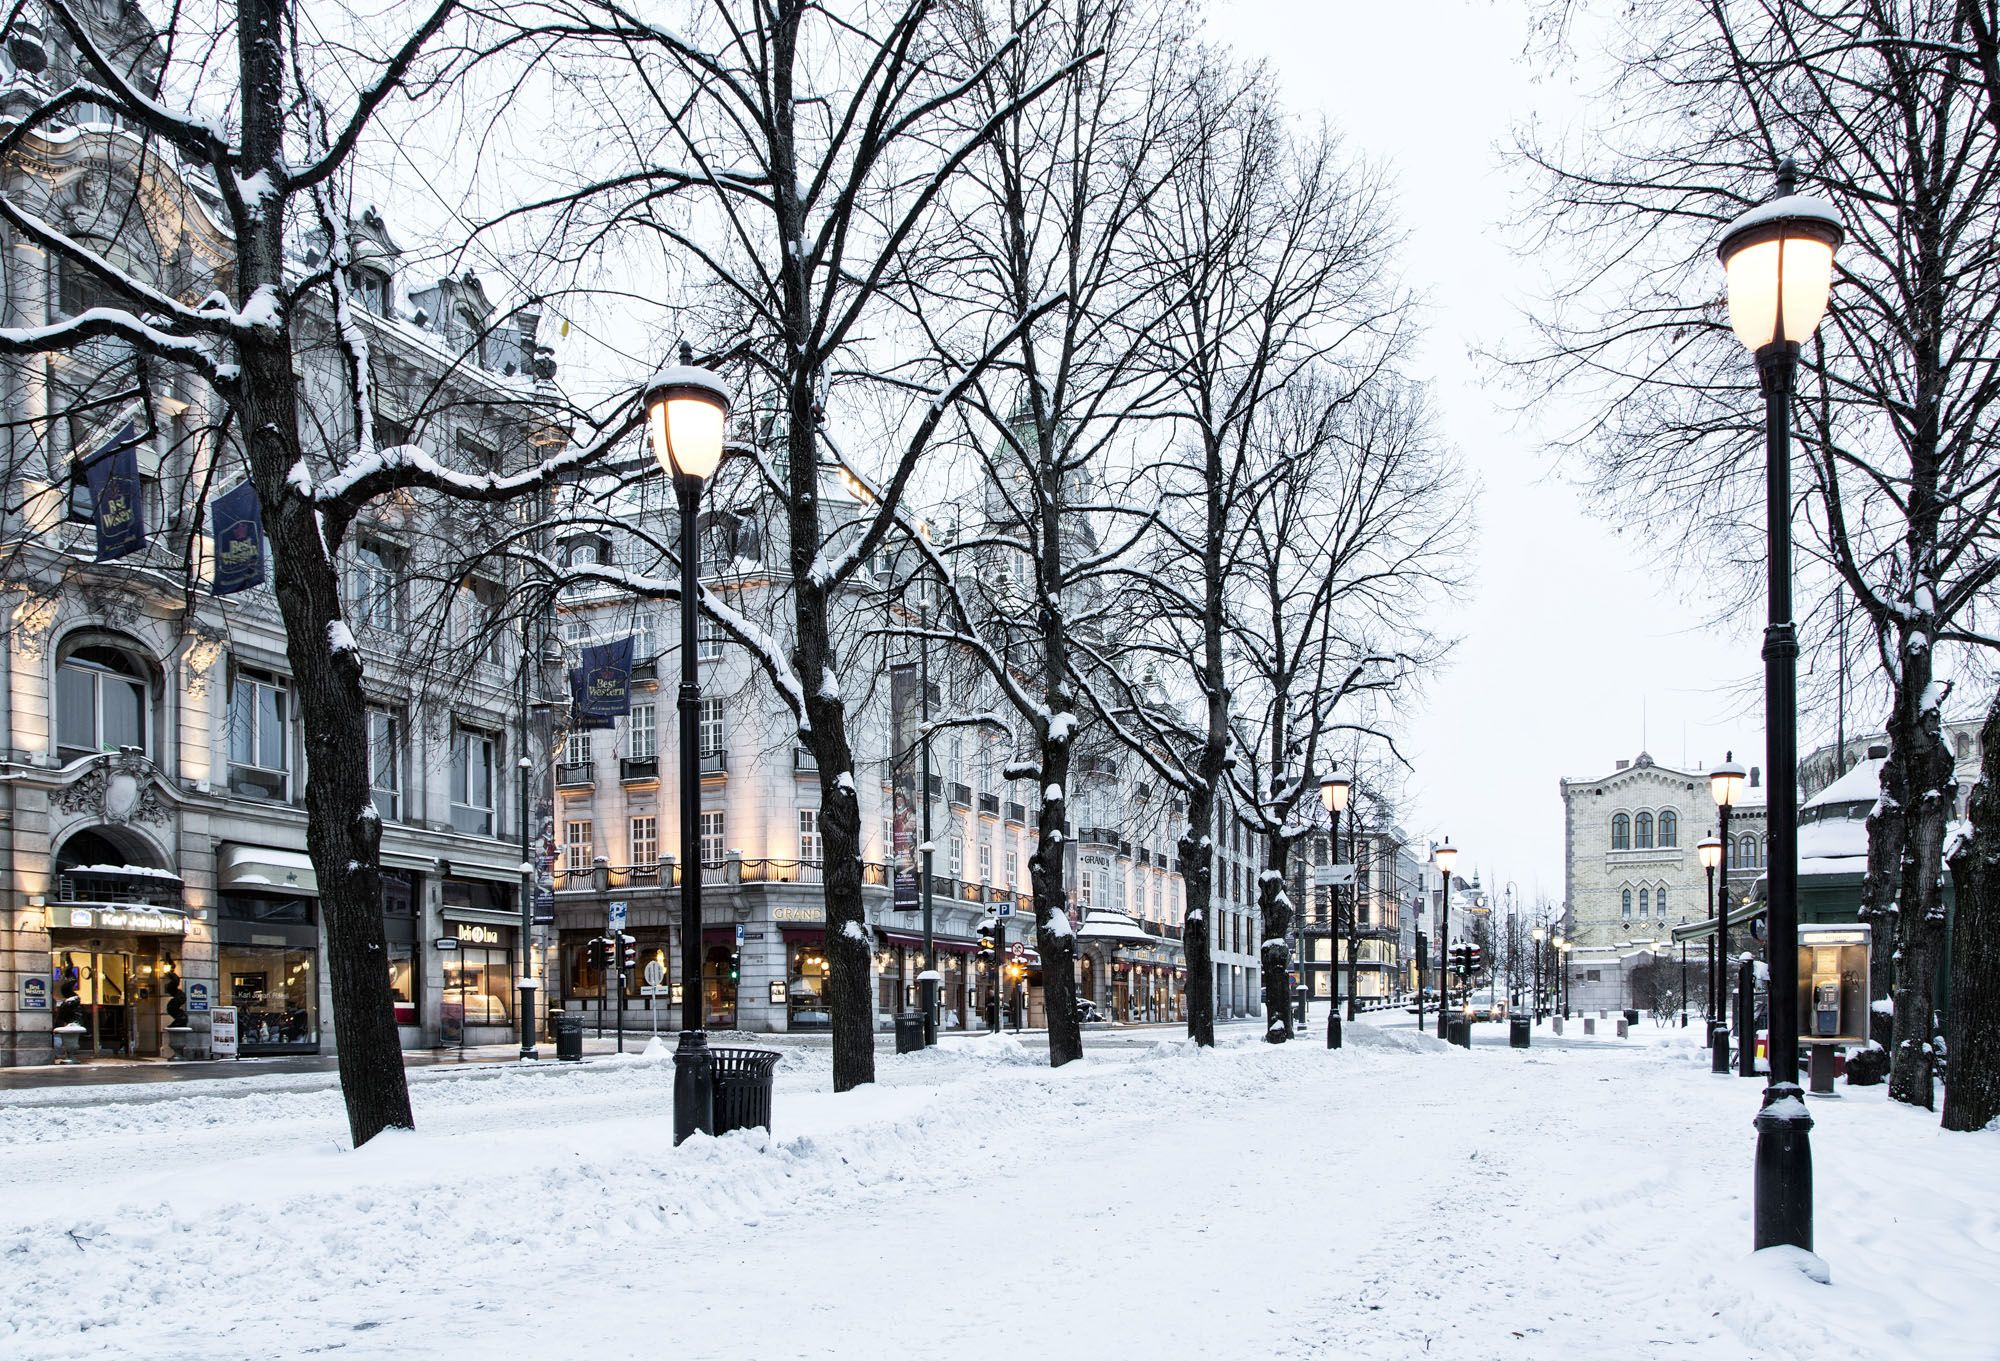 Image result for oslo karl johan gate winter